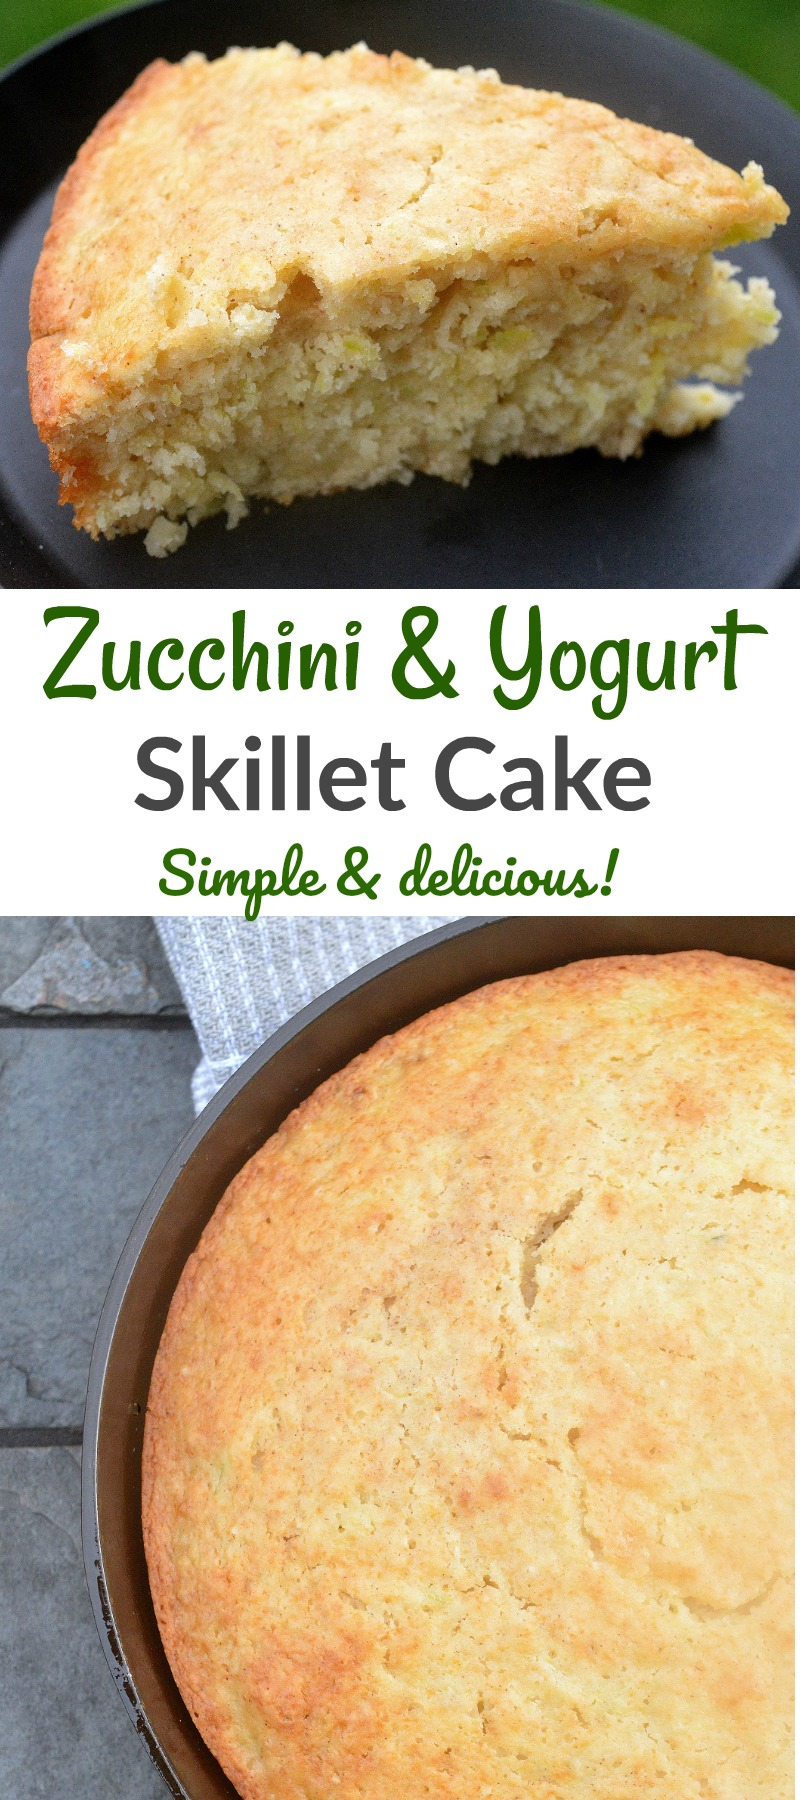 Zucchini Yogurt Skillet Cake. Simple, moist & delicious!